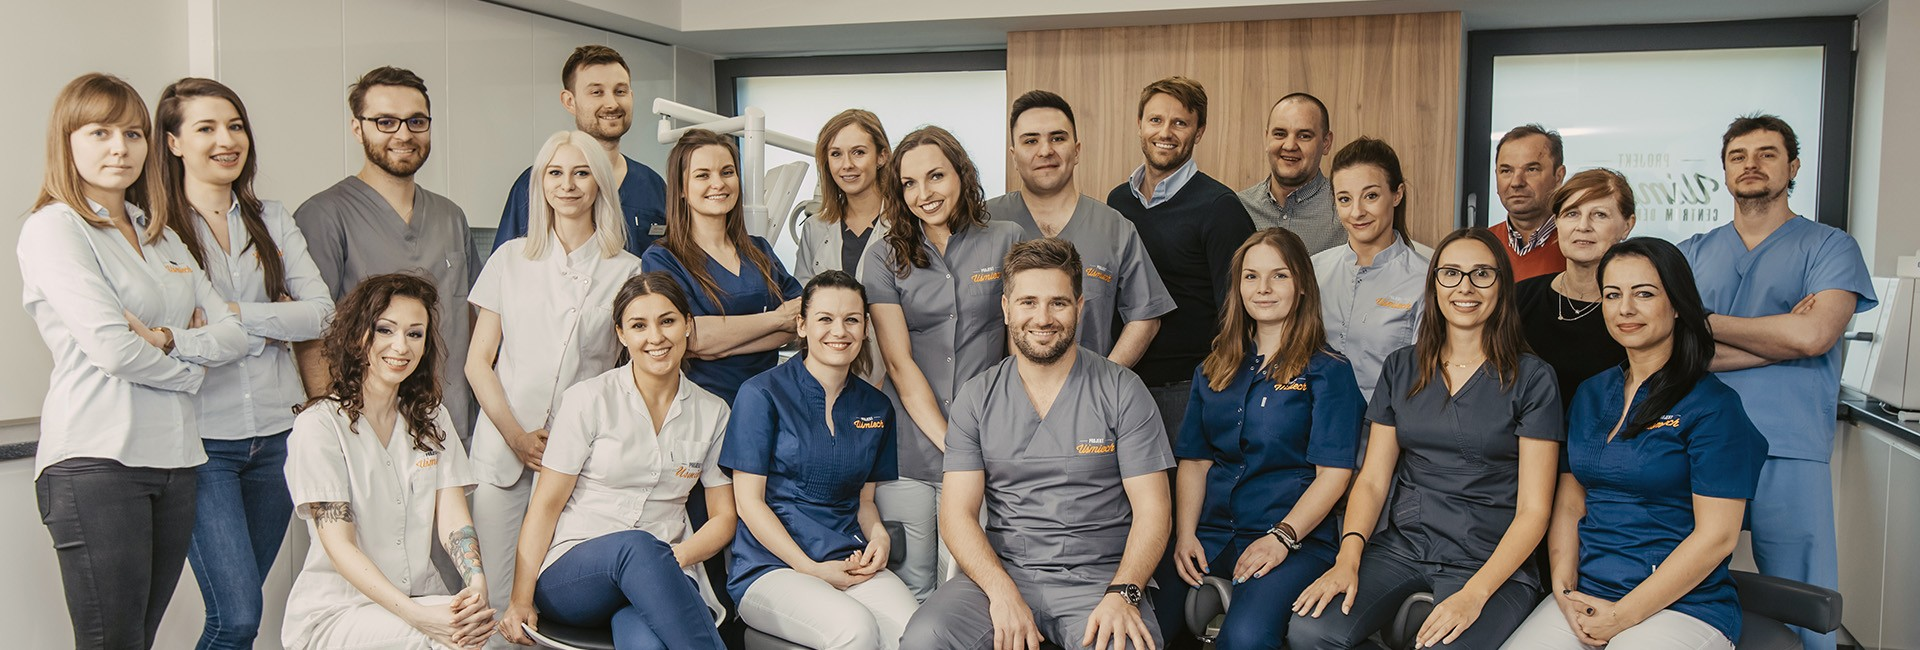 Qualified and Experienced Dentists Specializing in Different Areas of Dentistry